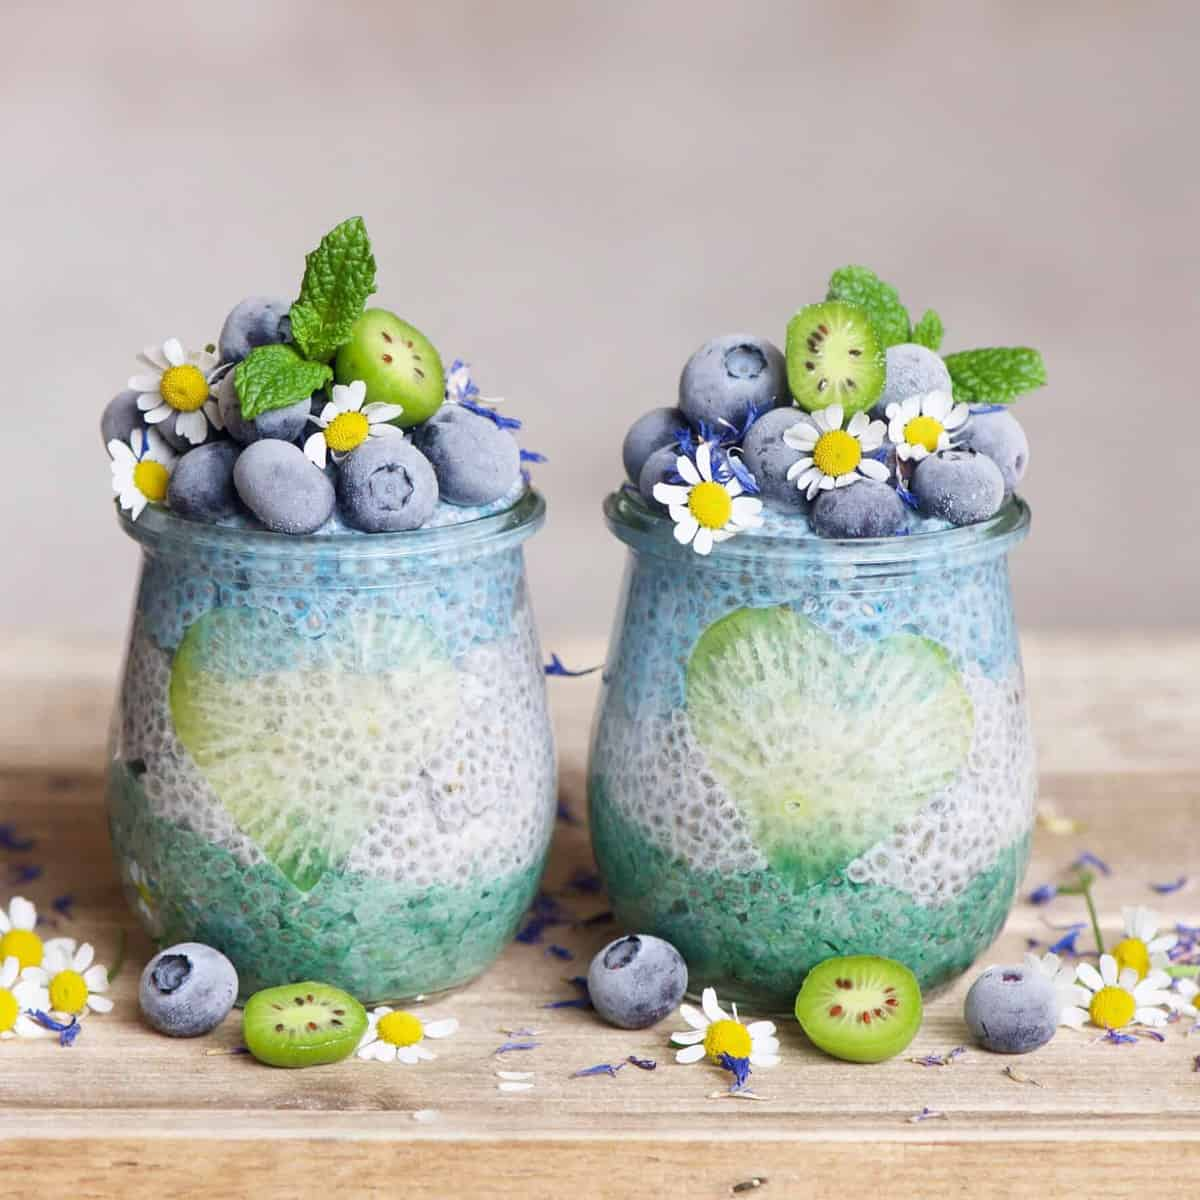 Two jars with chia pudding decorated with blueberries and edible flowers